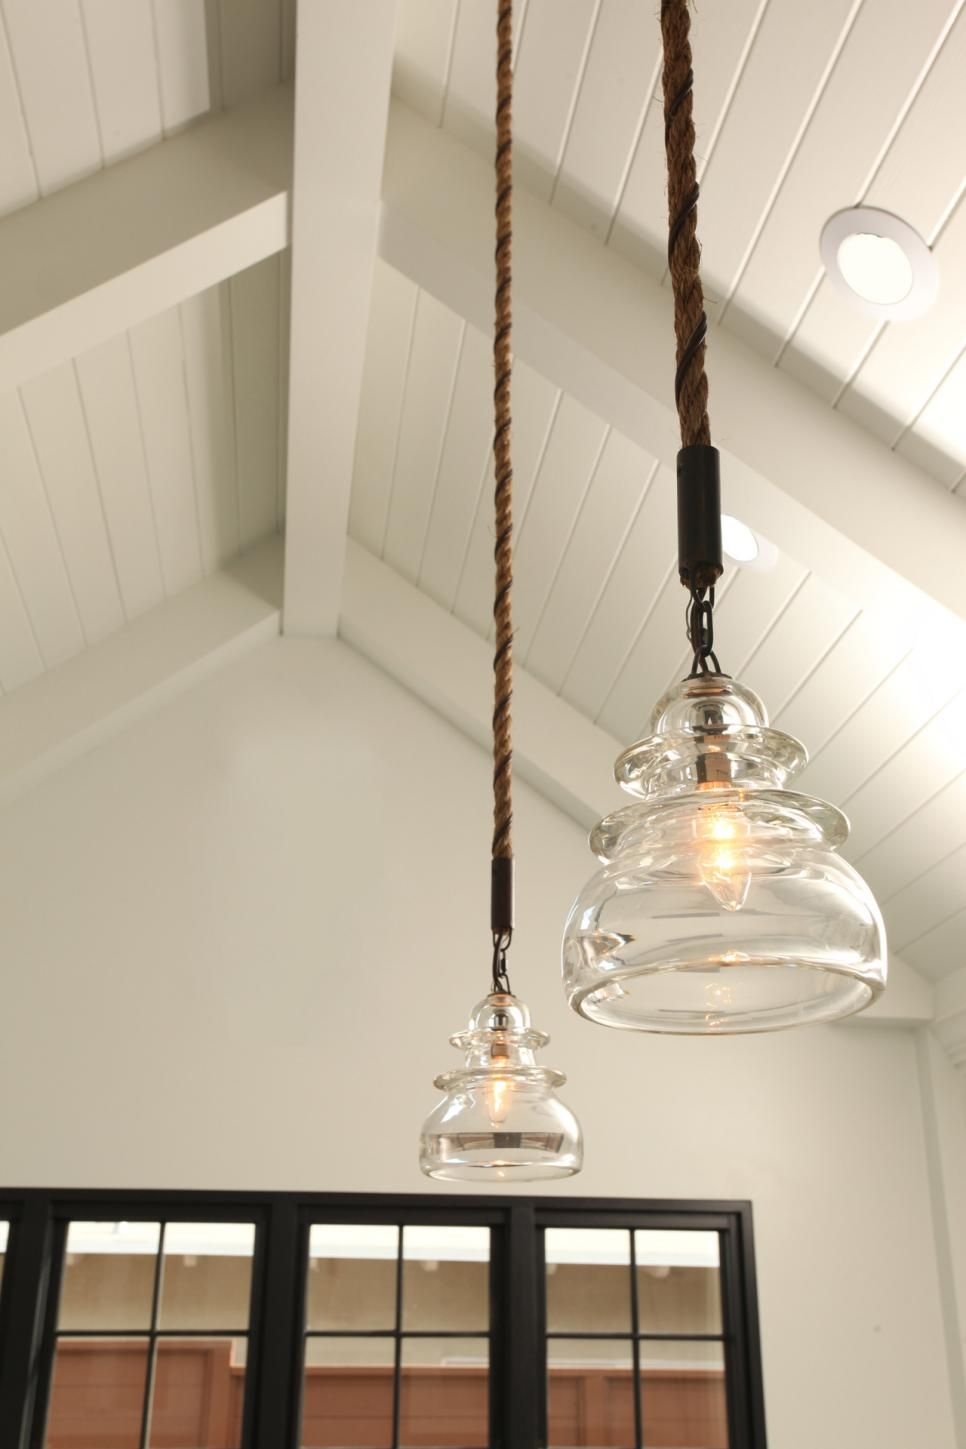 Country Pendant Lights In Transitional Farmhouse Kitchen Farmhouse Pendant Lighting Rustic Pendant Lighting Farmhouse Light Fixtures